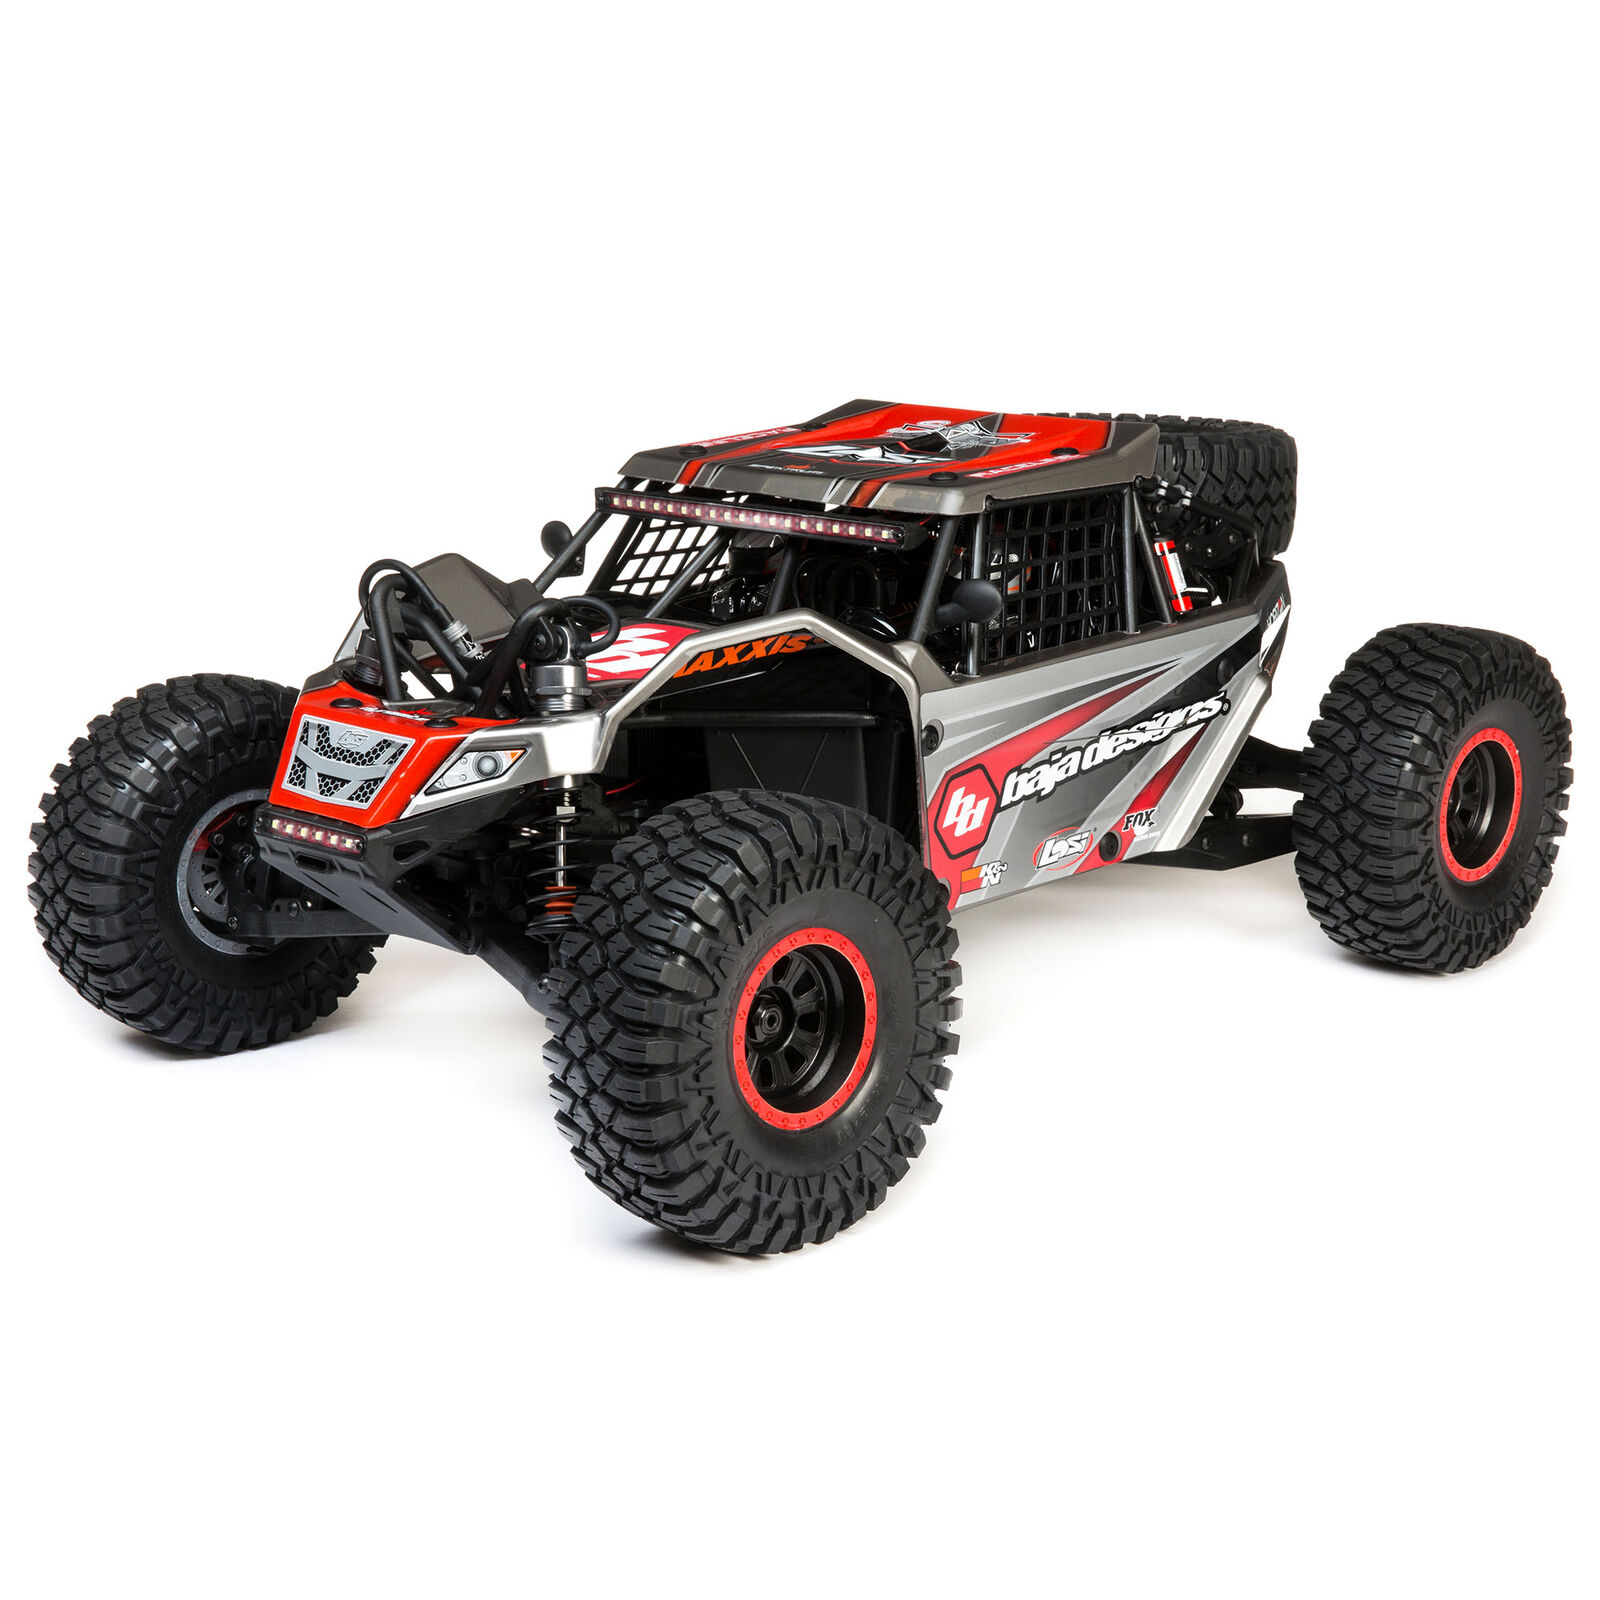 1/6 Super Rock Rey 4WD Brushless Rock Racer RTR with AVC, Baja Designs